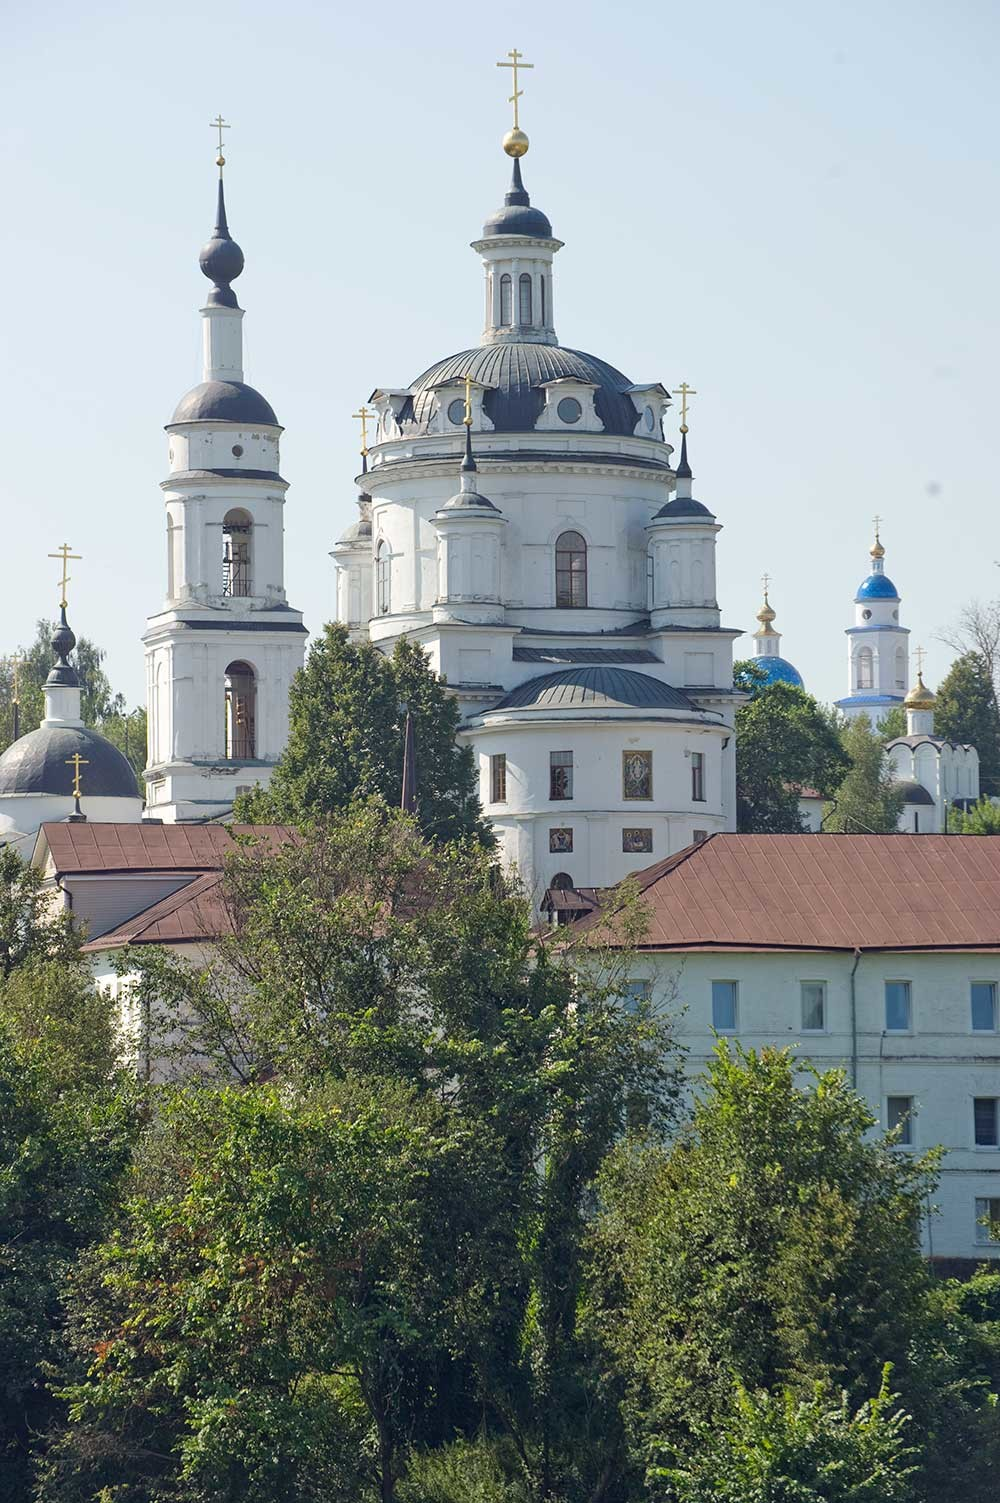 St. Nicholas-Chernoostrovsky Convent, southeast view. From left: Church of the